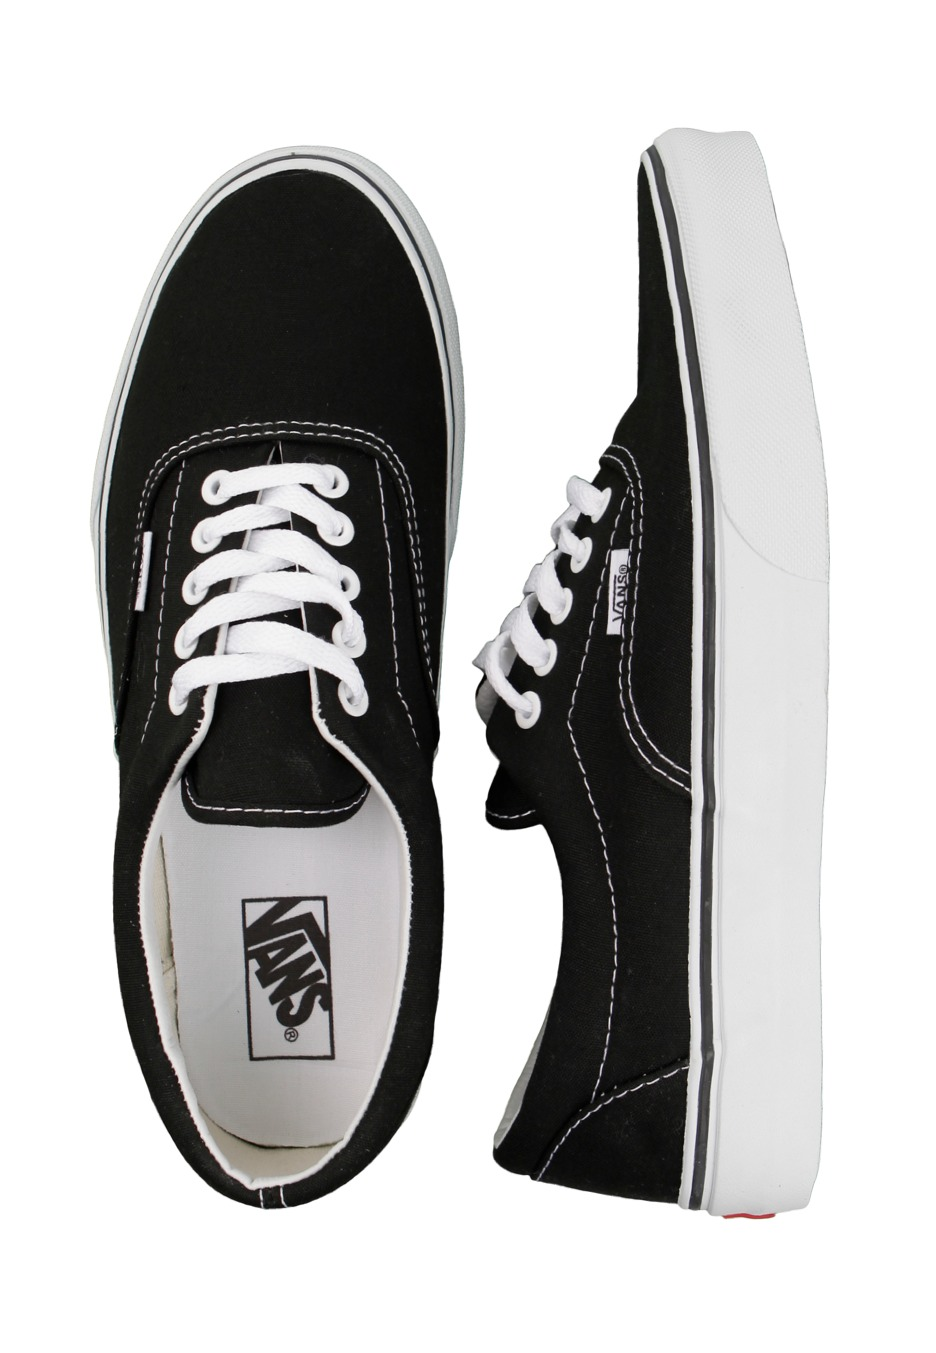 Vans - Era Black White - Shoes - Impericon.com UK 24cdef631